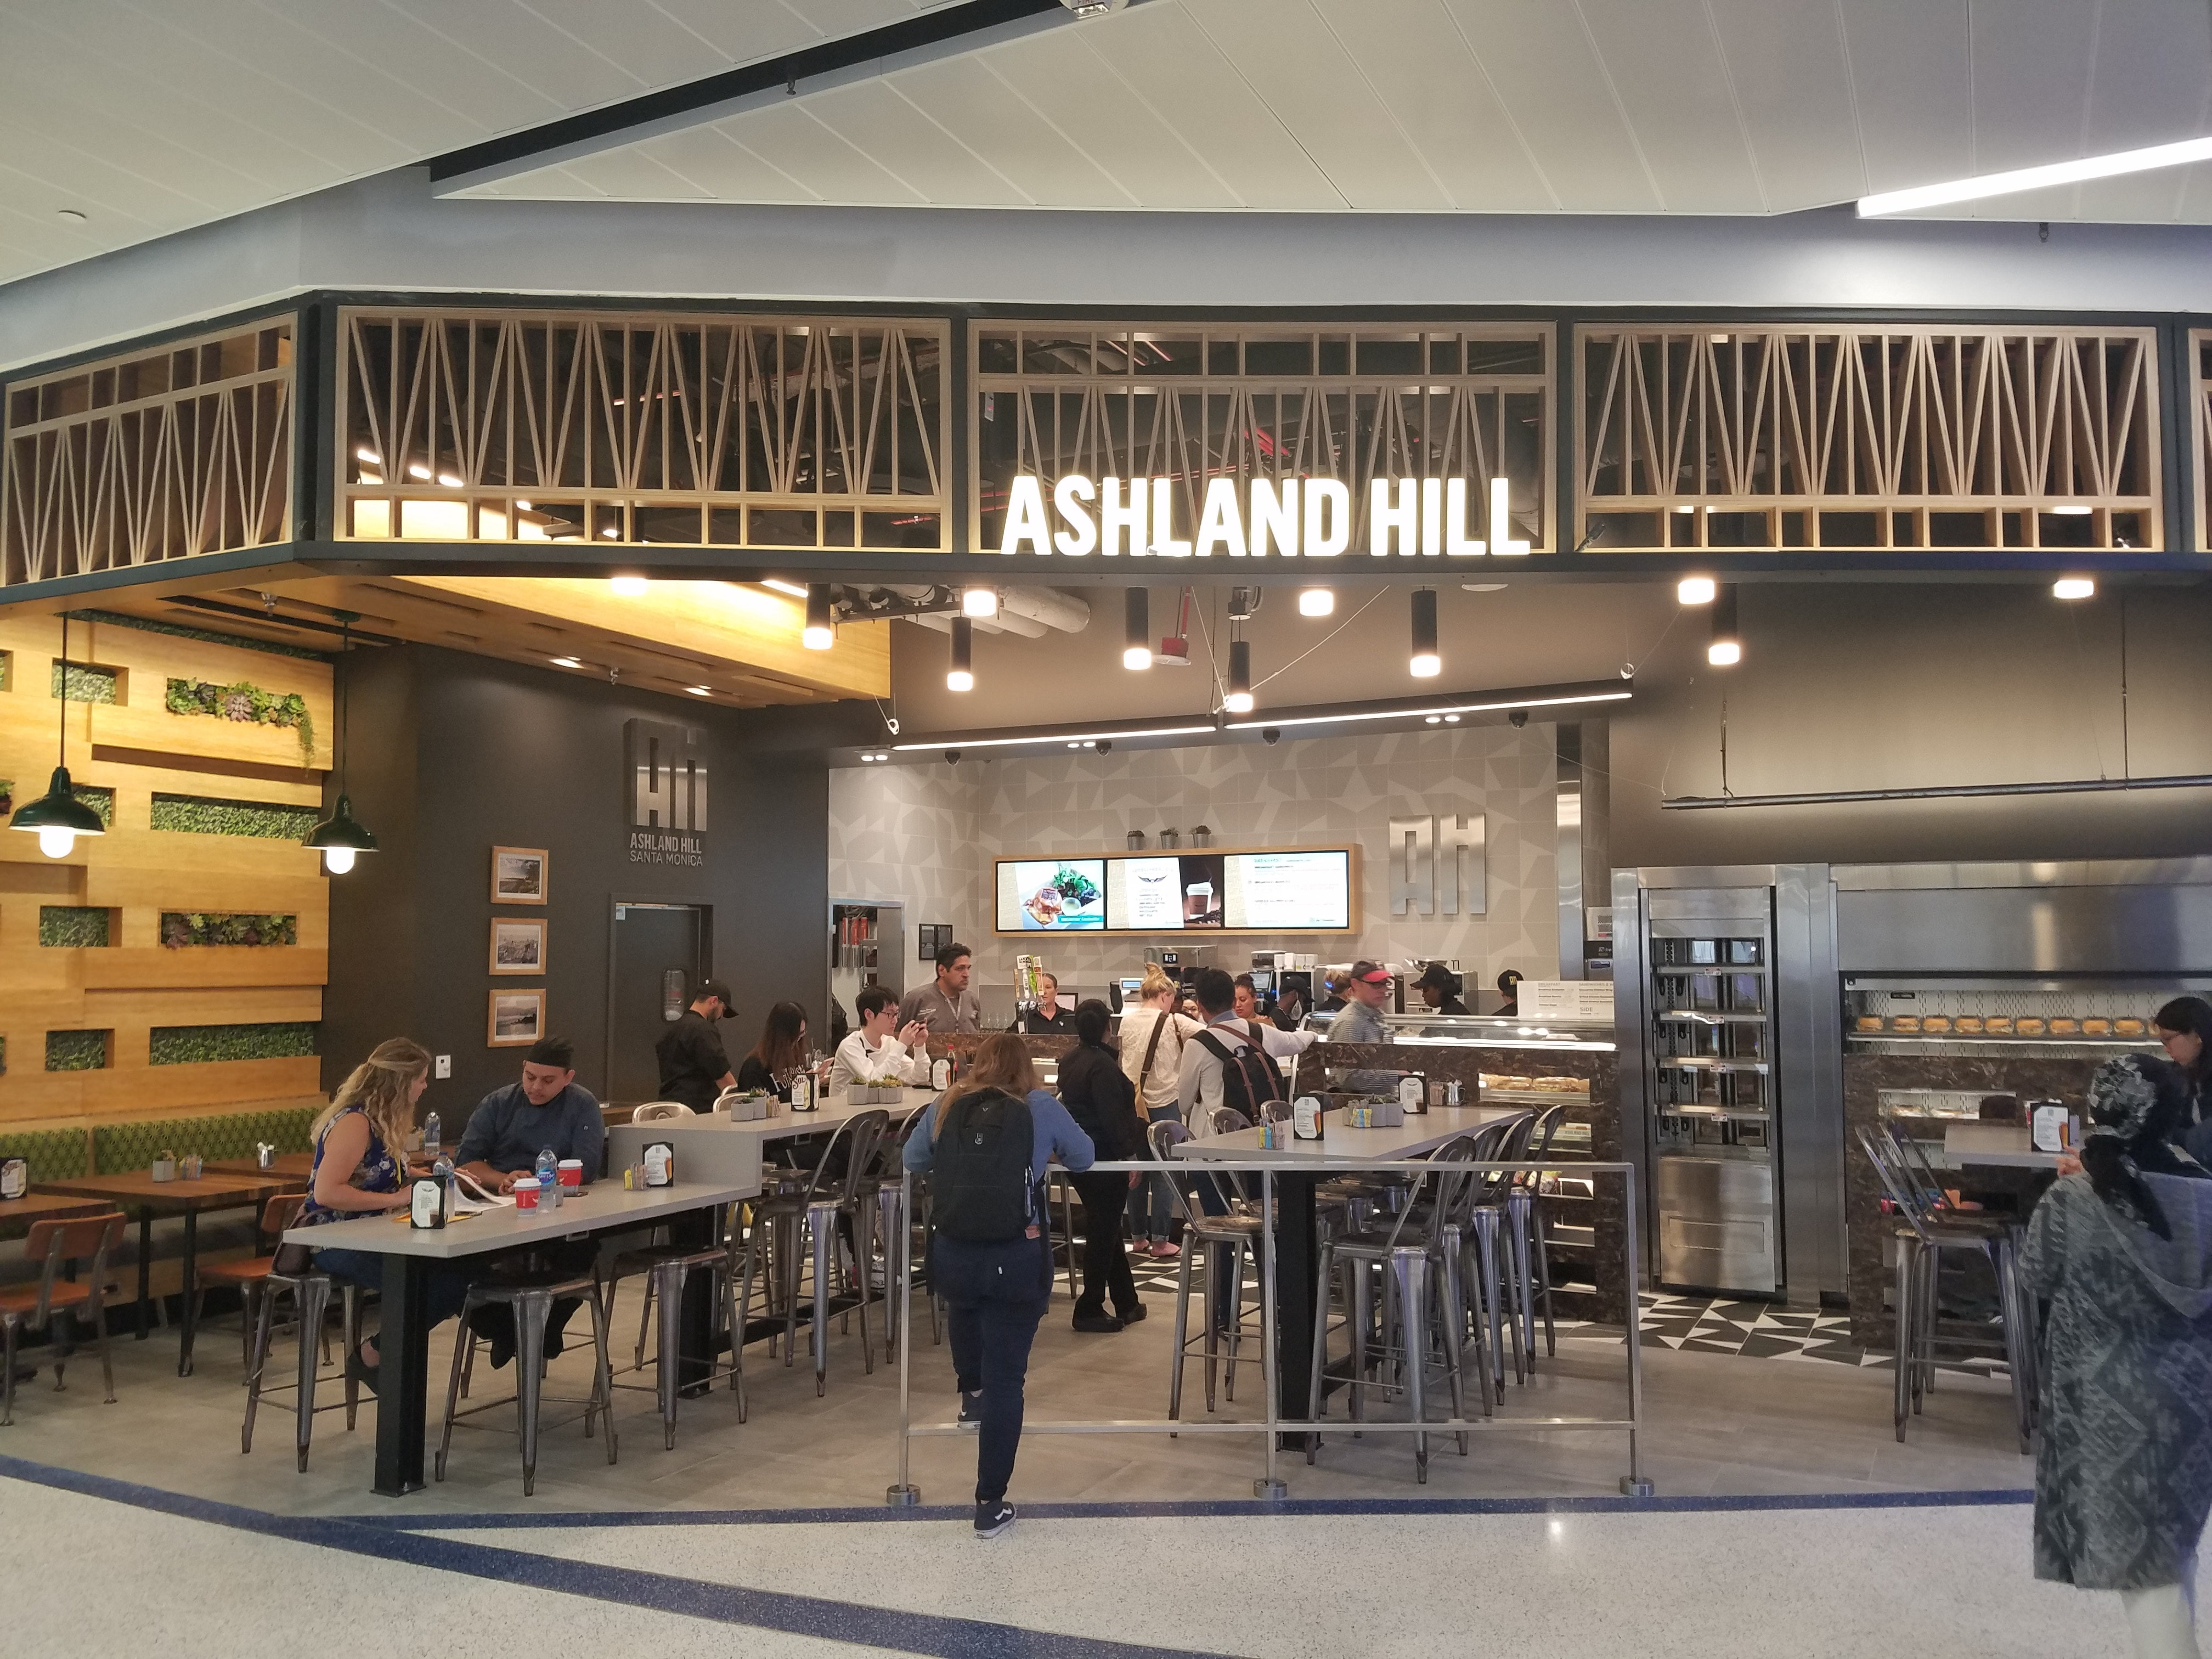 Ashland Hill in Termianl 7 of the Los Angeles International Airport